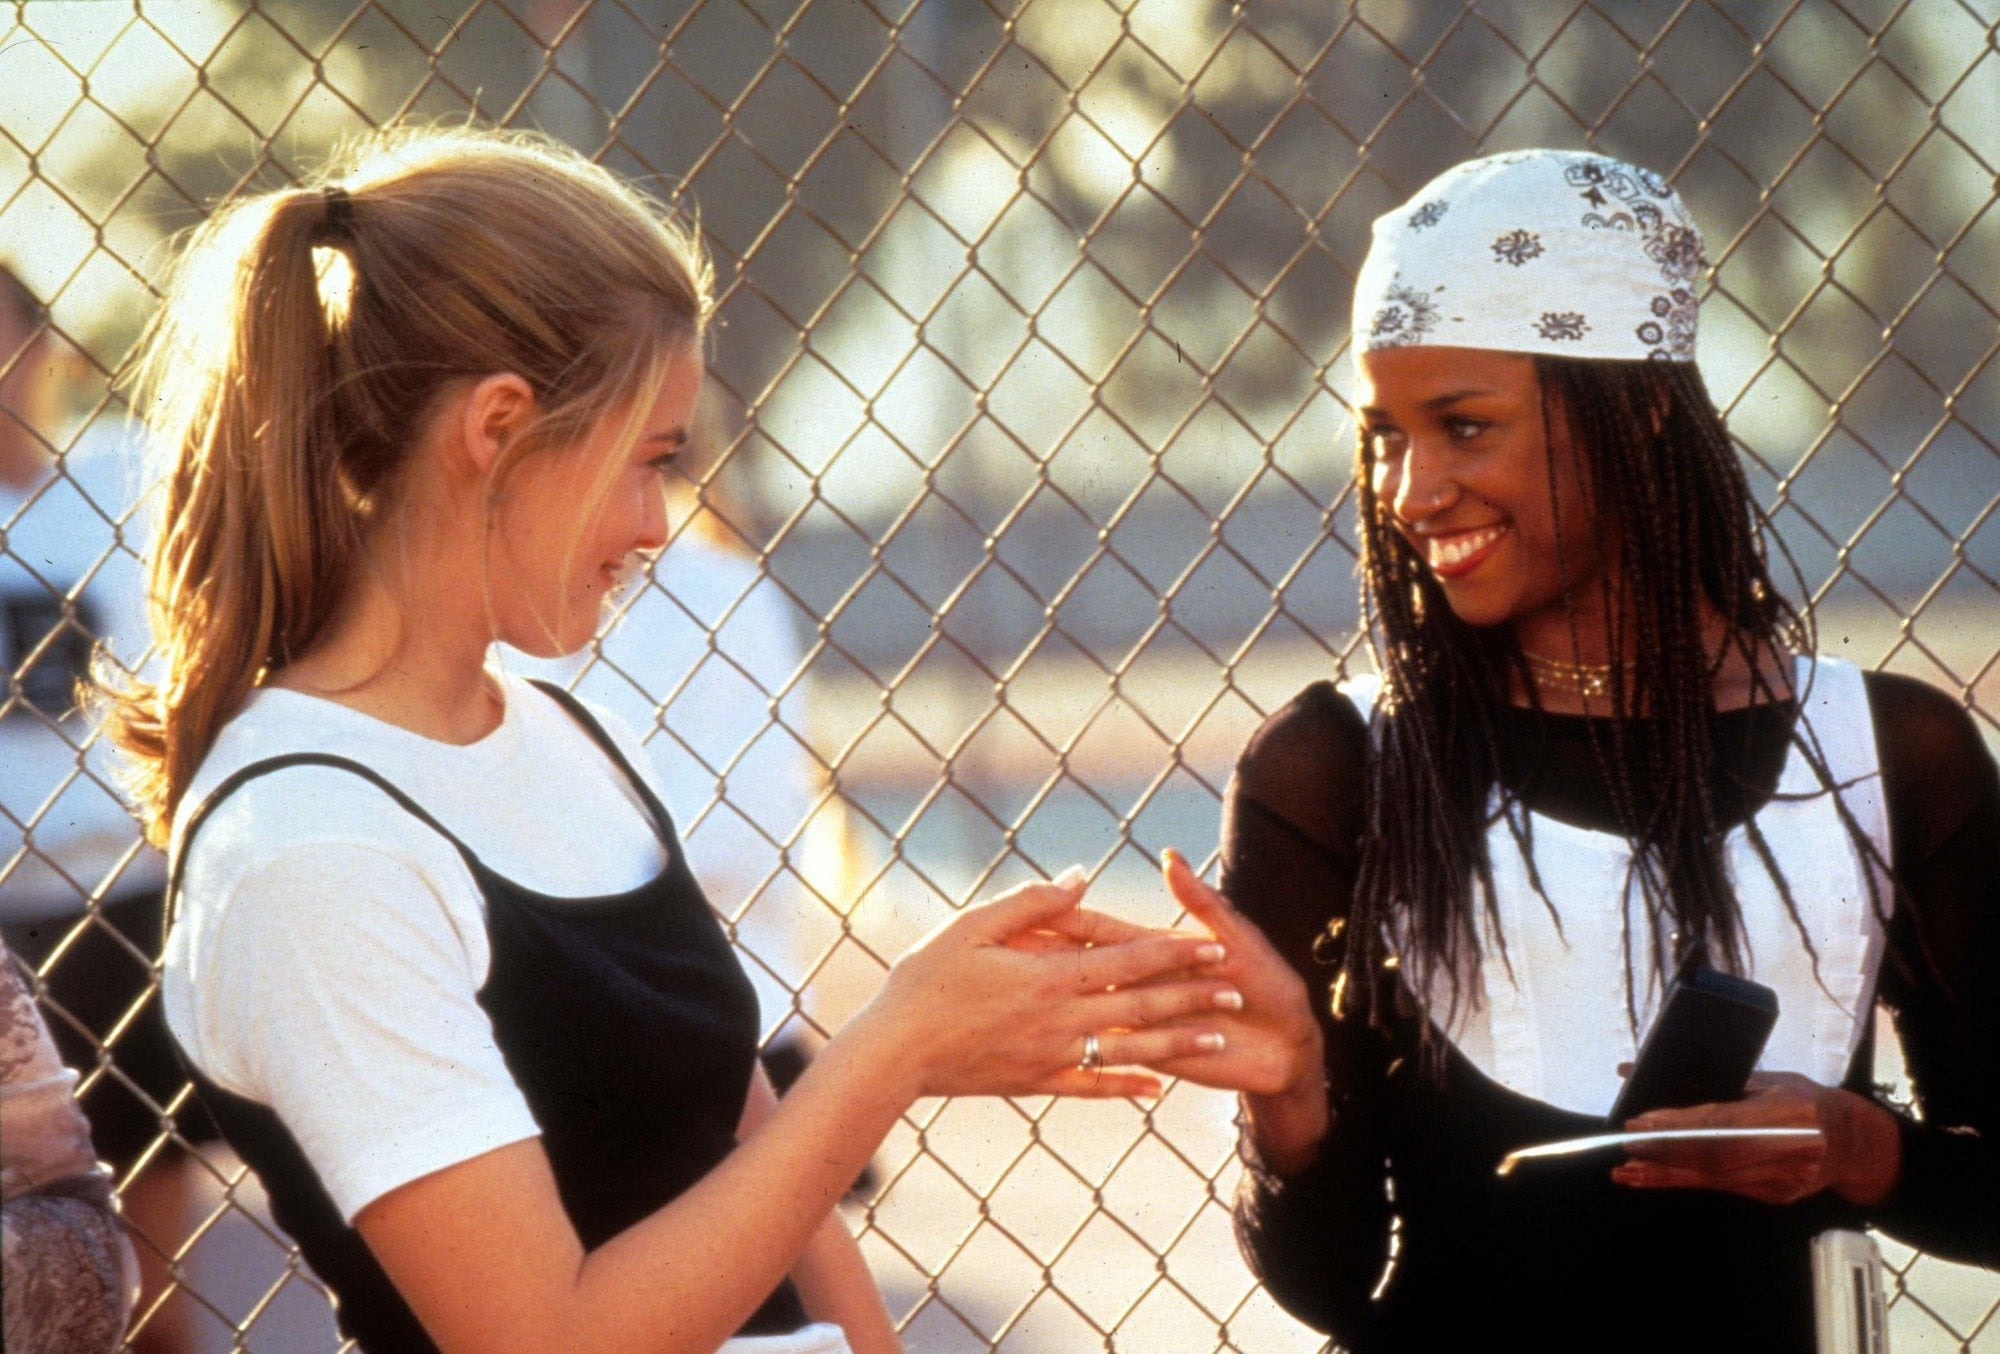 90s hairstyles: Dionne from Clueless with long box braids with white bandana in picture from Clueless